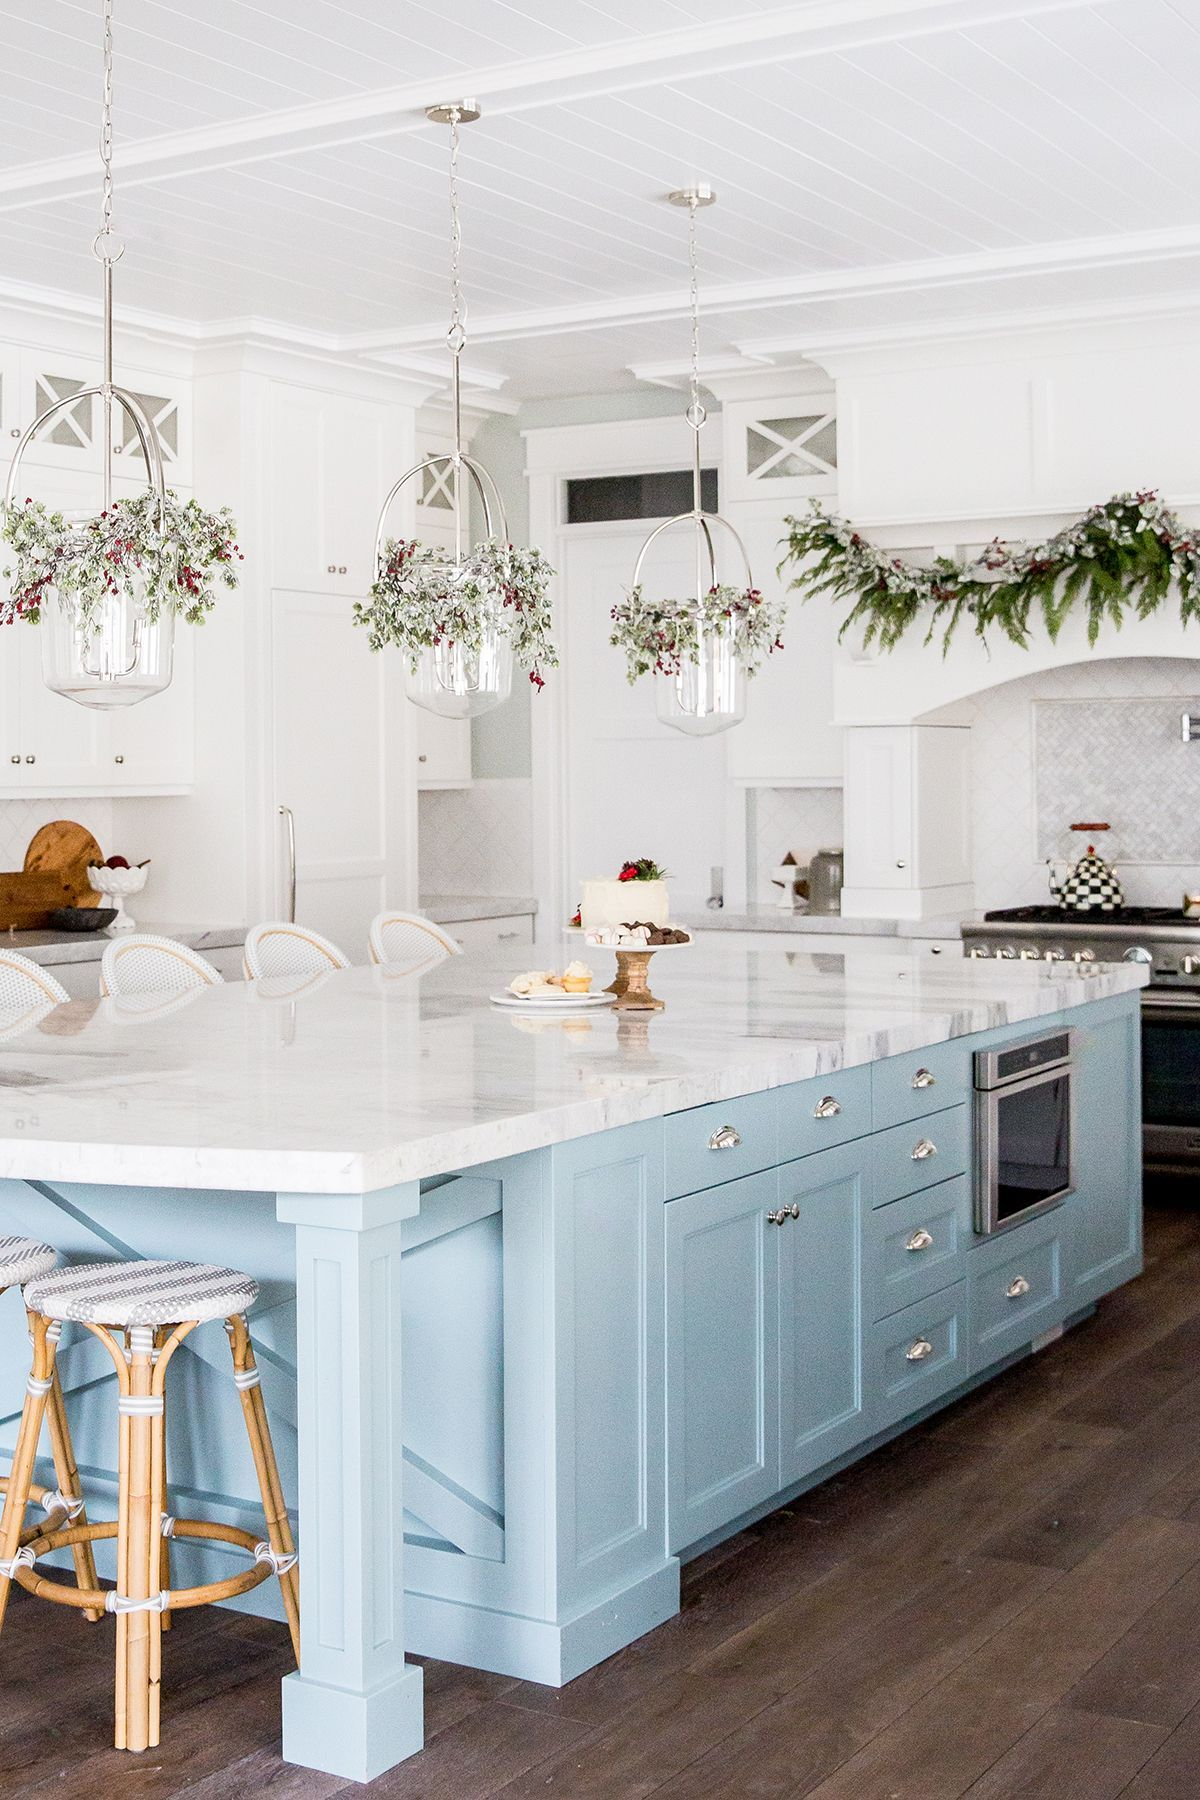 In Love With Rachel Parcell S Parents Kitchen Which She Helped Decorate For Christmas Just Stunning Cuisine Moderne Inspiration Cuisine